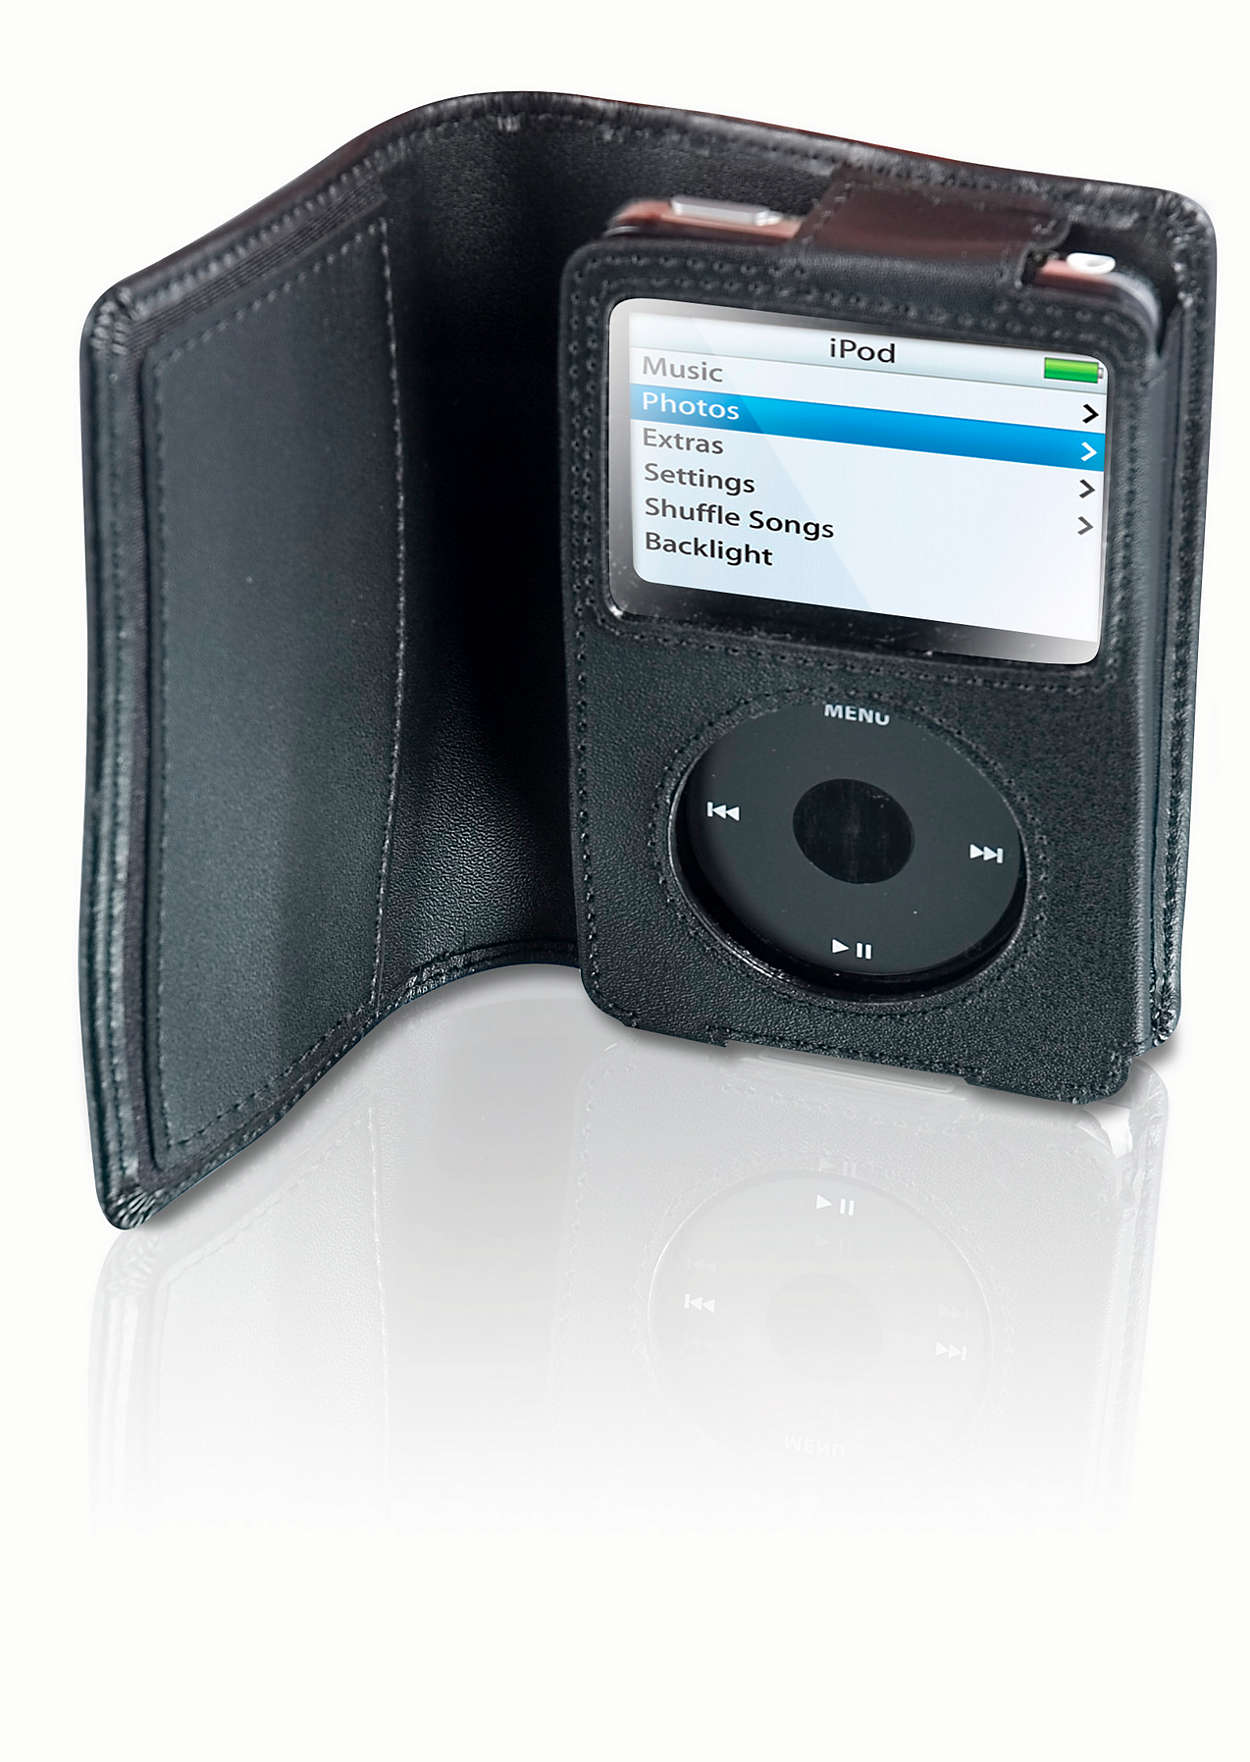 Protect your iPod video in style